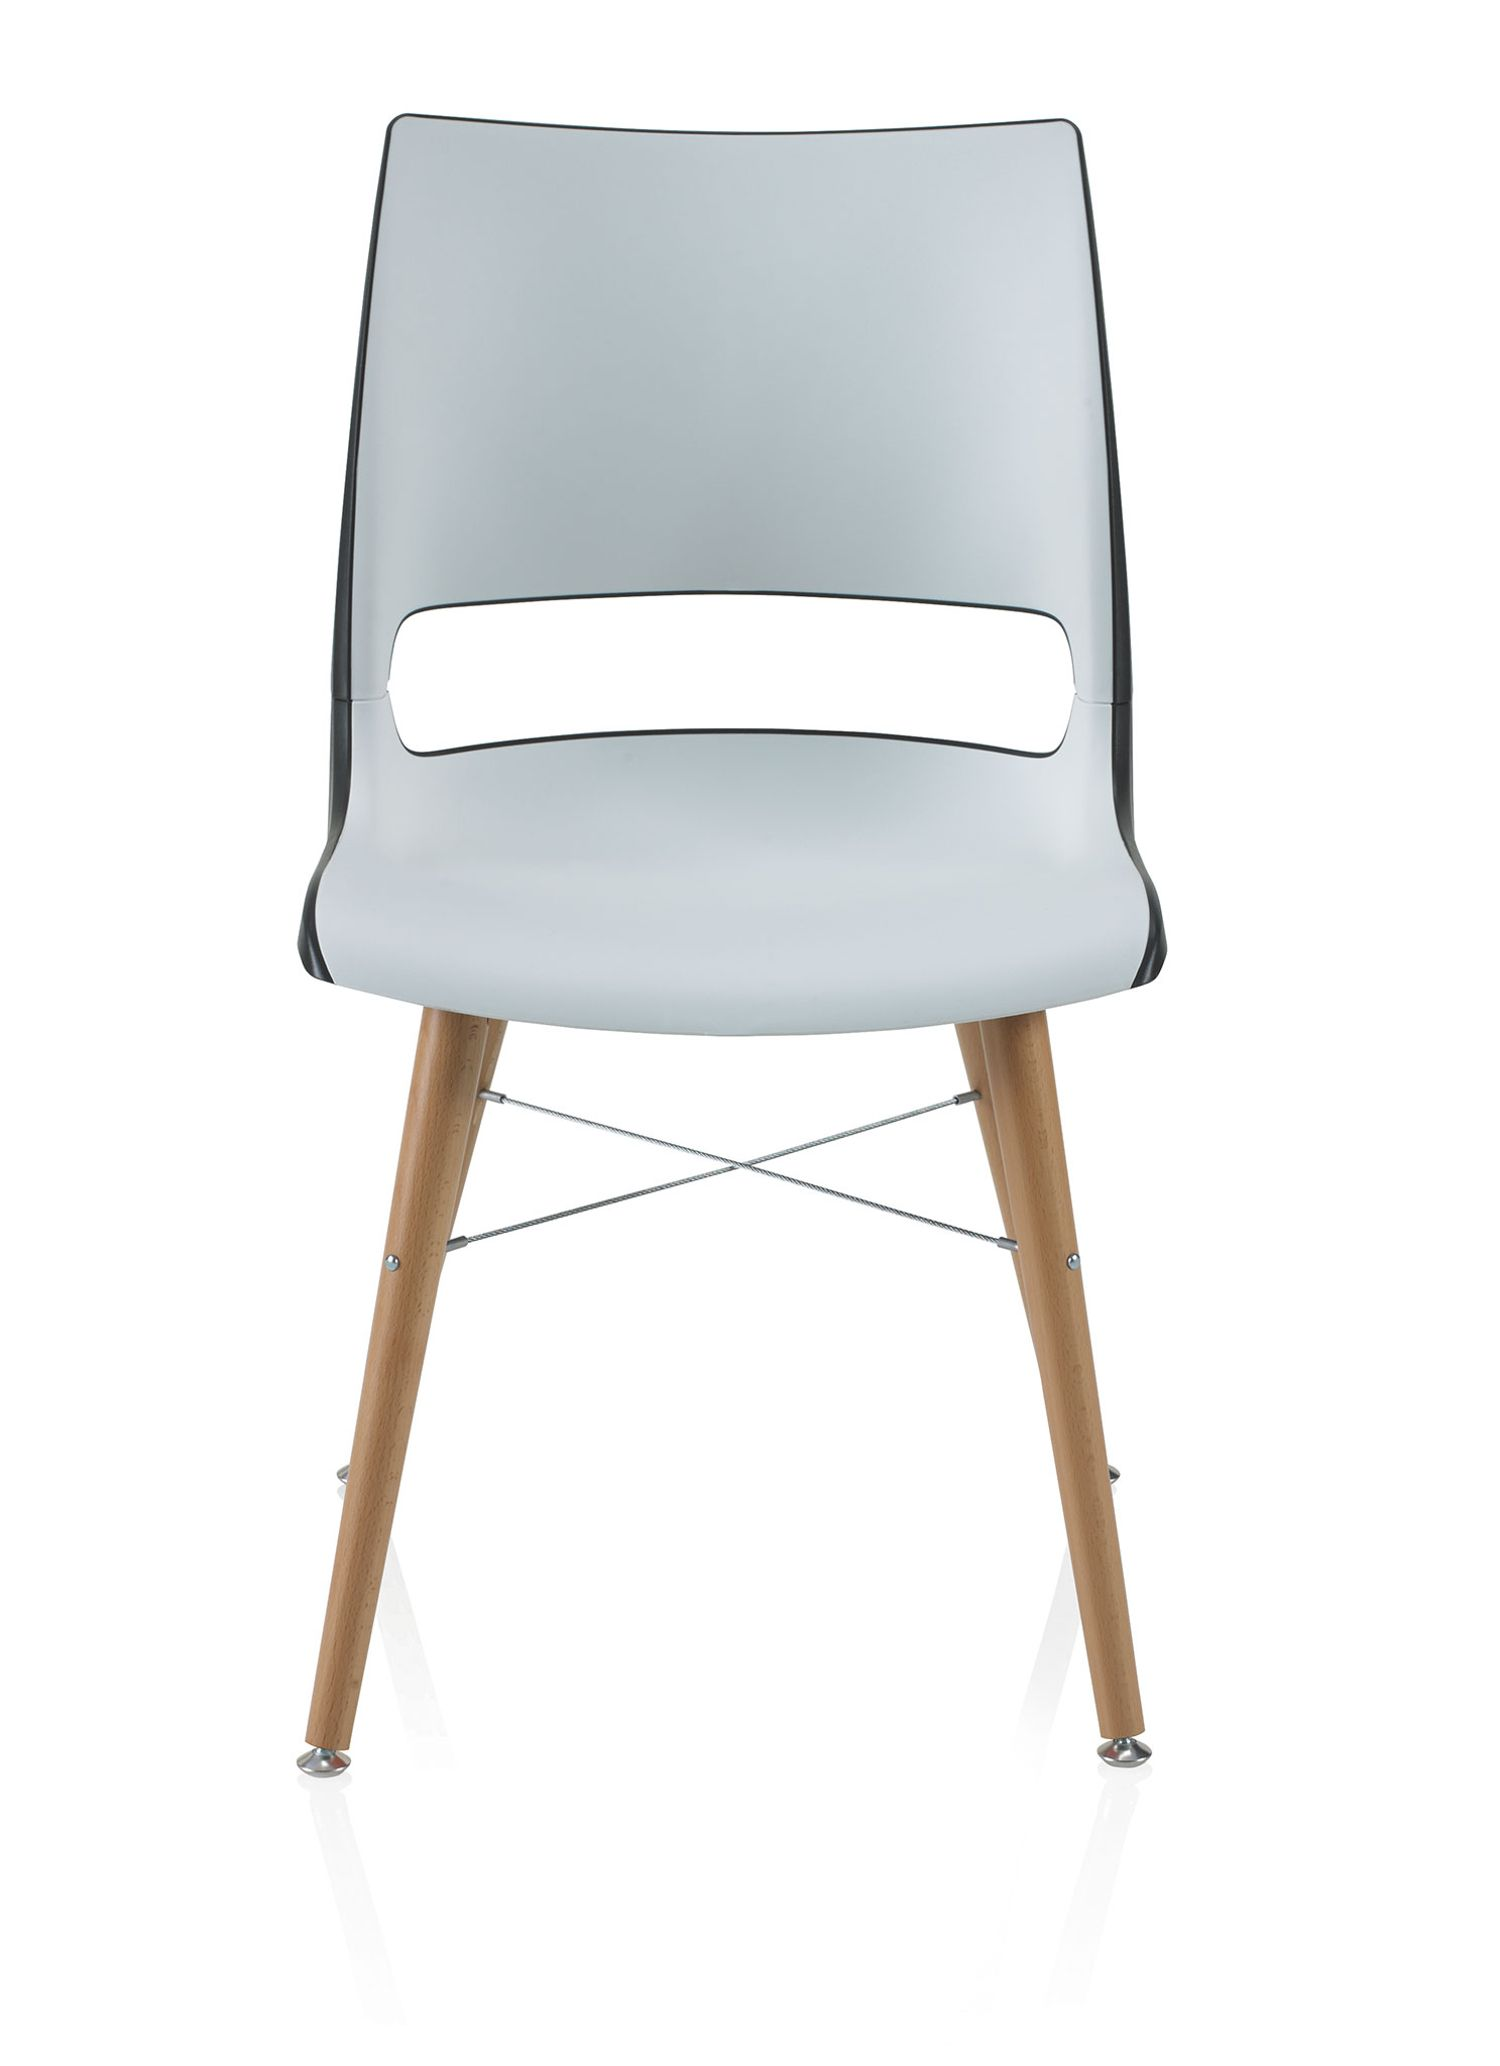 ki doni tapered wood leg guest chair with two tone shell